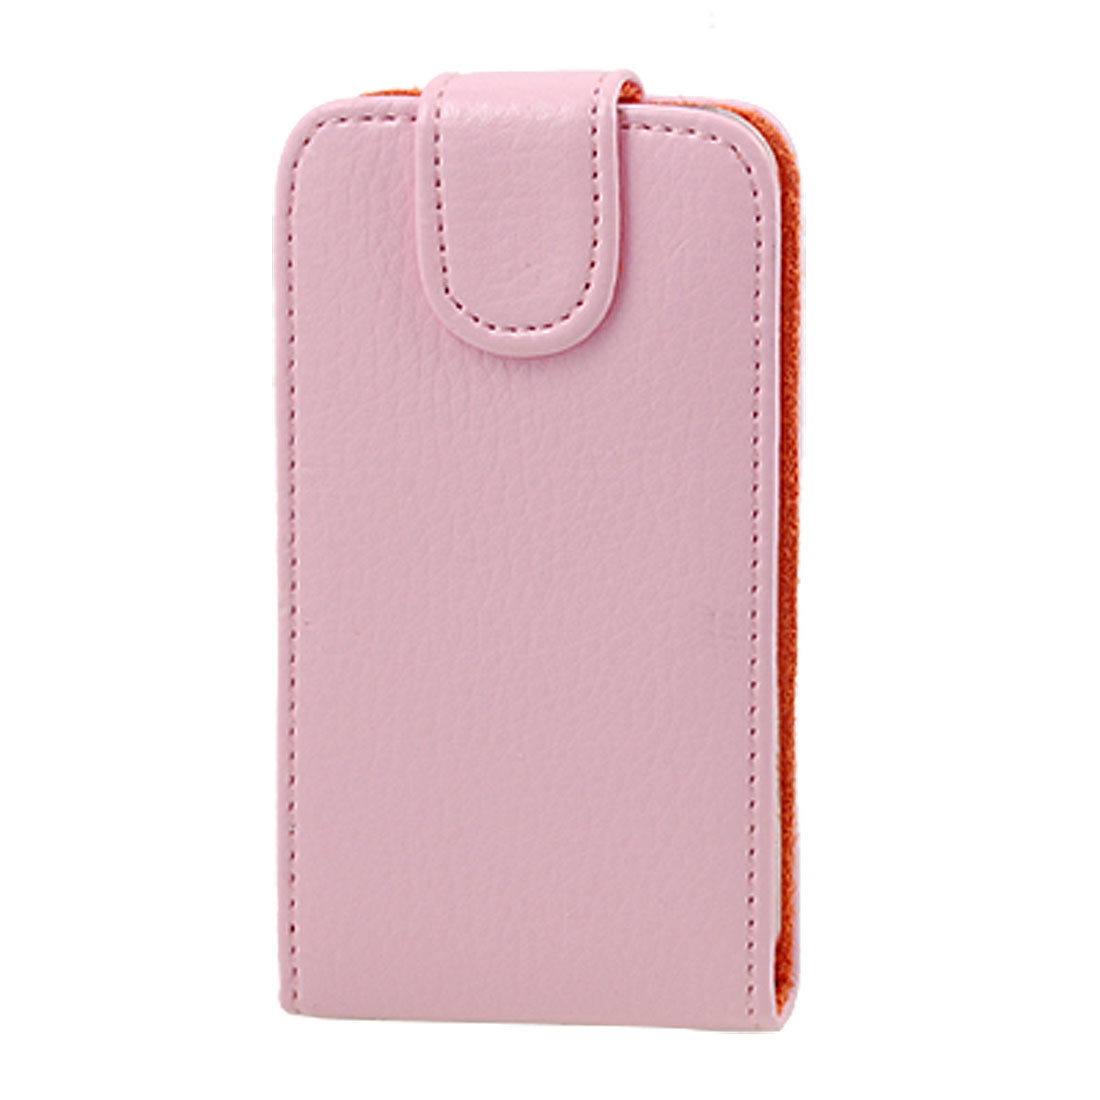 Pink Faux Leather Case + Screen Protector for iPhone 4 4G